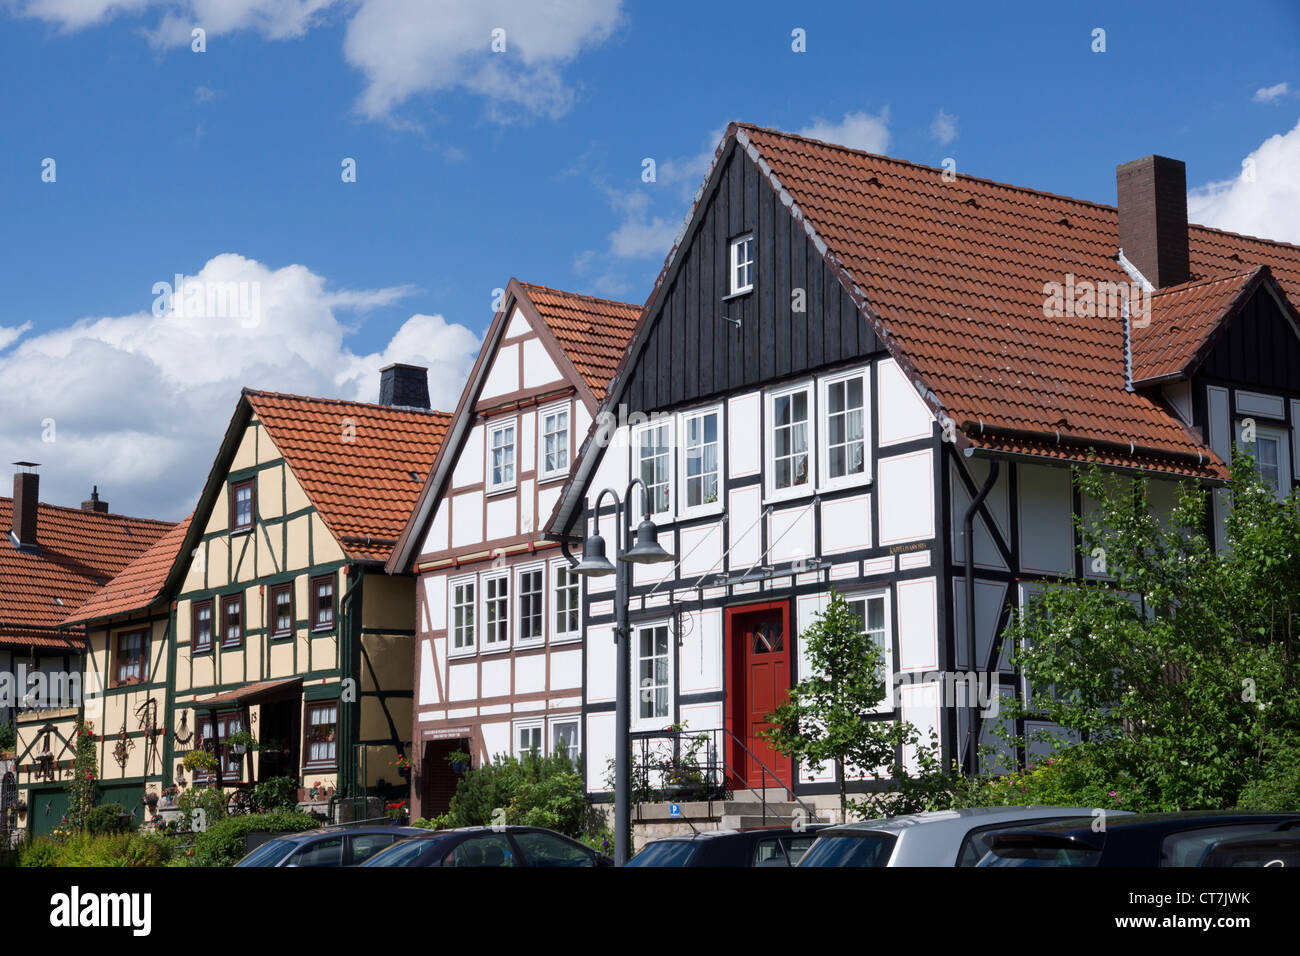 Half-timbered houses,  Korbach, district  Waldeck-Frankenberg, Hesse, Germany, Europe - Stock Image